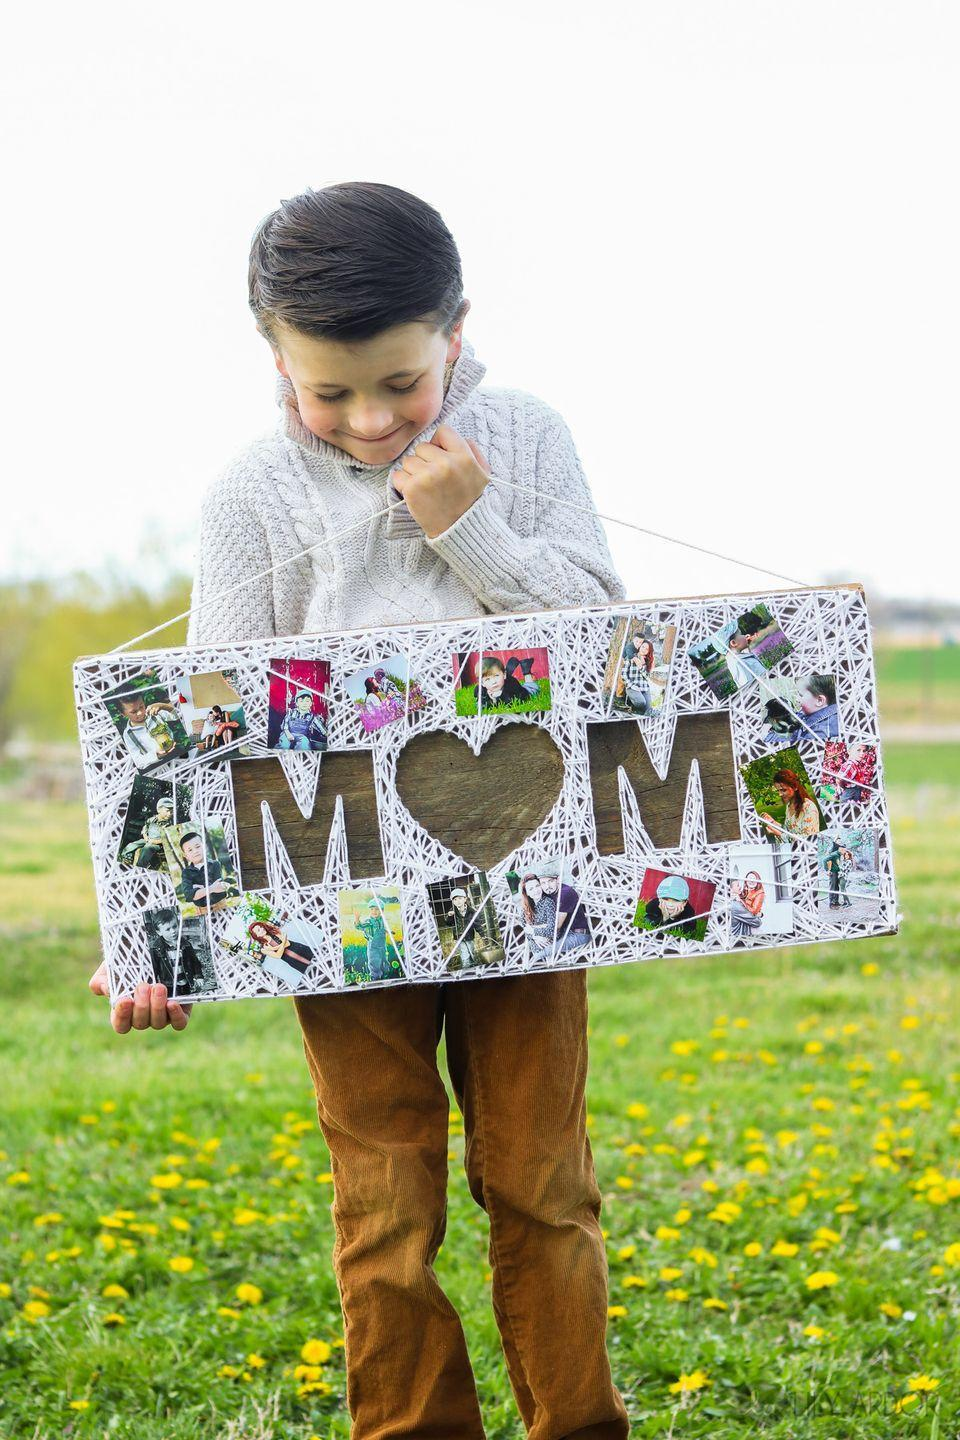 """<p>Instead of getting mom <em>another </em>picture frame, make her a piece of wall art that can hold all of her family photos in one charming, handmade place.</p><p><em><strong>Get the tutorial from <a href=""""https://www.lilyardor.com/mothers-day-string-art-photo-gift/"""" rel=""""nofollow noopener"""" target=""""_blank"""" data-ylk=""""slk:Lily Ardor"""" class=""""link rapid-noclick-resp"""">Lily Ardor</a>. </strong></em></p><p><strong><a class=""""link rapid-noclick-resp"""" href=""""https://www.amazon.com/TYH-Supplies-Acrylic-Assorted-Colors/dp/B00XLP2UGI/ref=sr_1_5?dchild=1&keywords=YARN&qid=1605822340&sr=8-5&tag=syn-yahoo-20&ascsubtag=%5Bartid%7C10063.g.34832092%5Bsrc%7Cyahoo-us"""" rel=""""nofollow noopener"""" target=""""_blank"""" data-ylk=""""slk:SHOP YARN"""">SHOP YARN</a></strong></p>"""